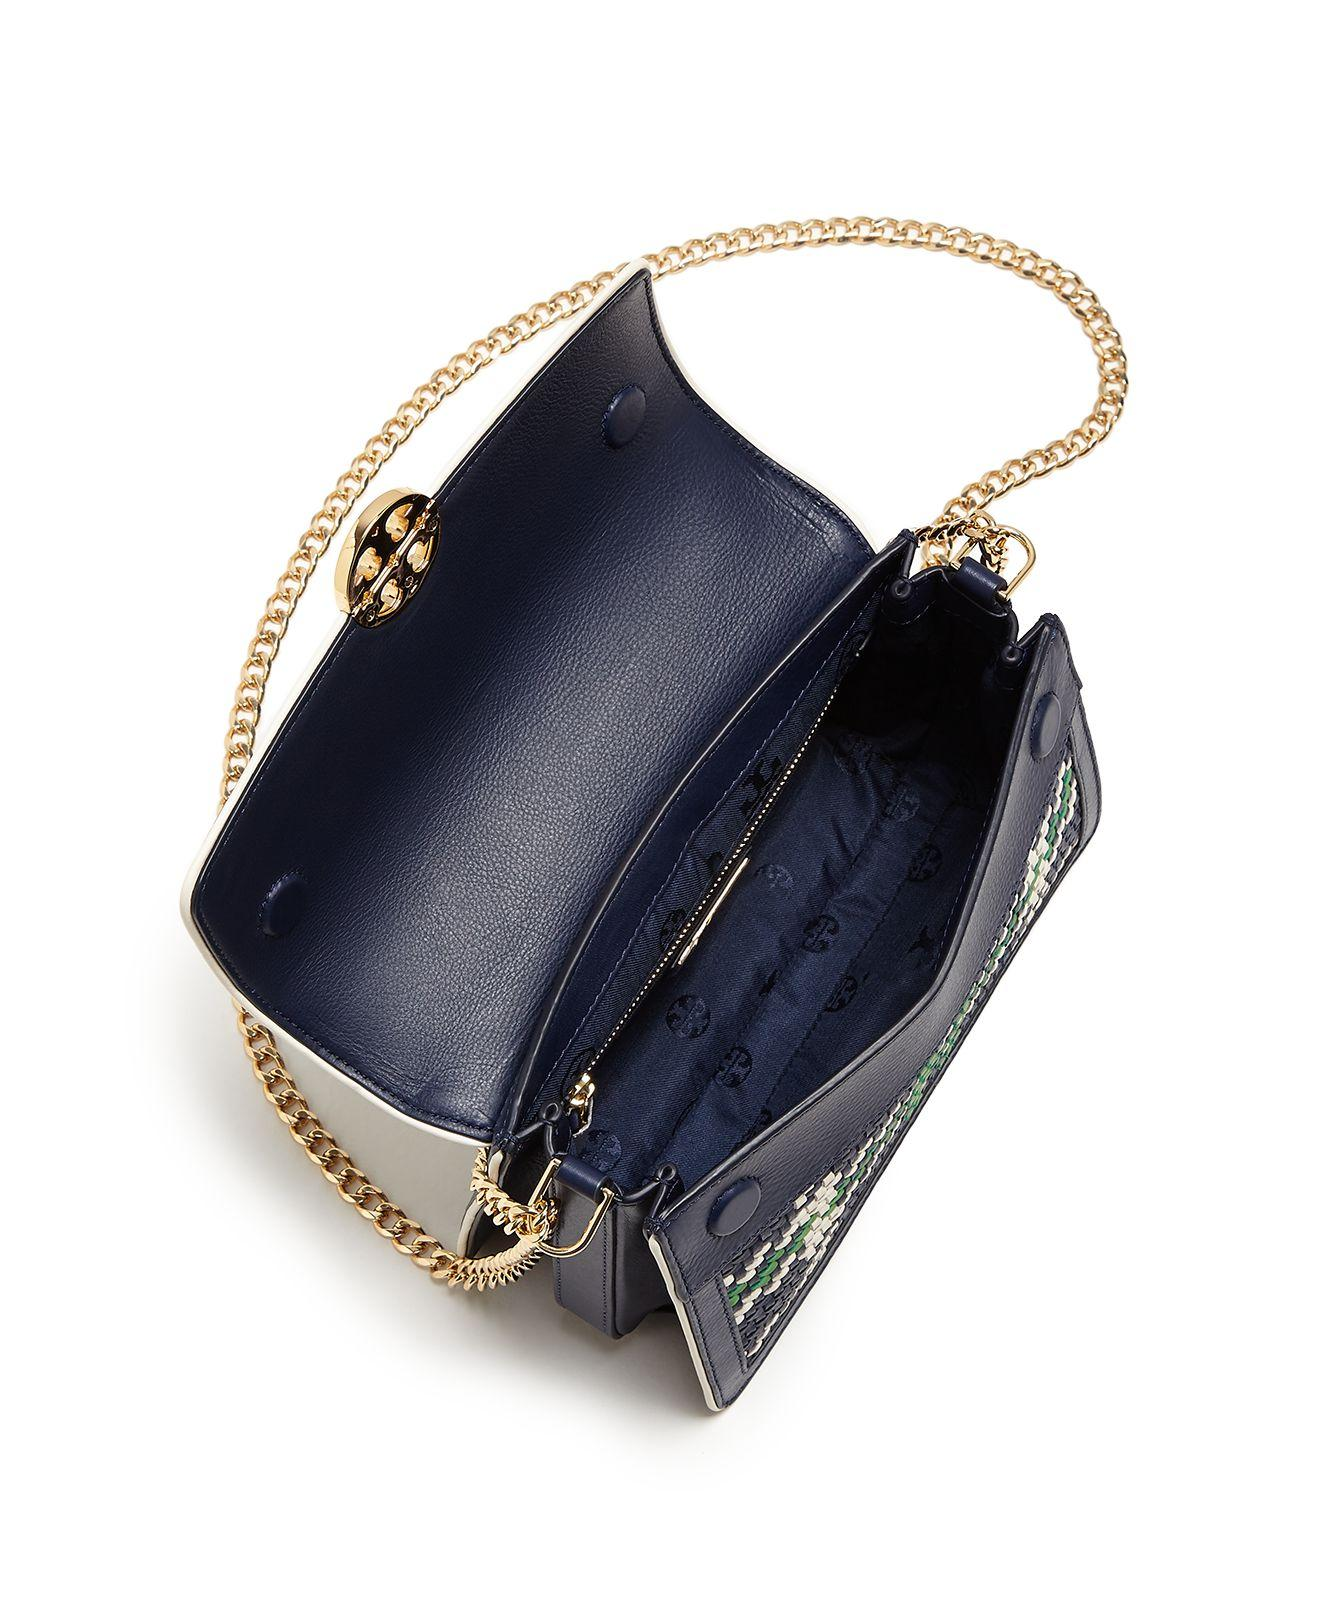 6bffaa8688c Lyst - Tory Burch Duet Chain Convertible Woven Leather Shoulder Bag ...